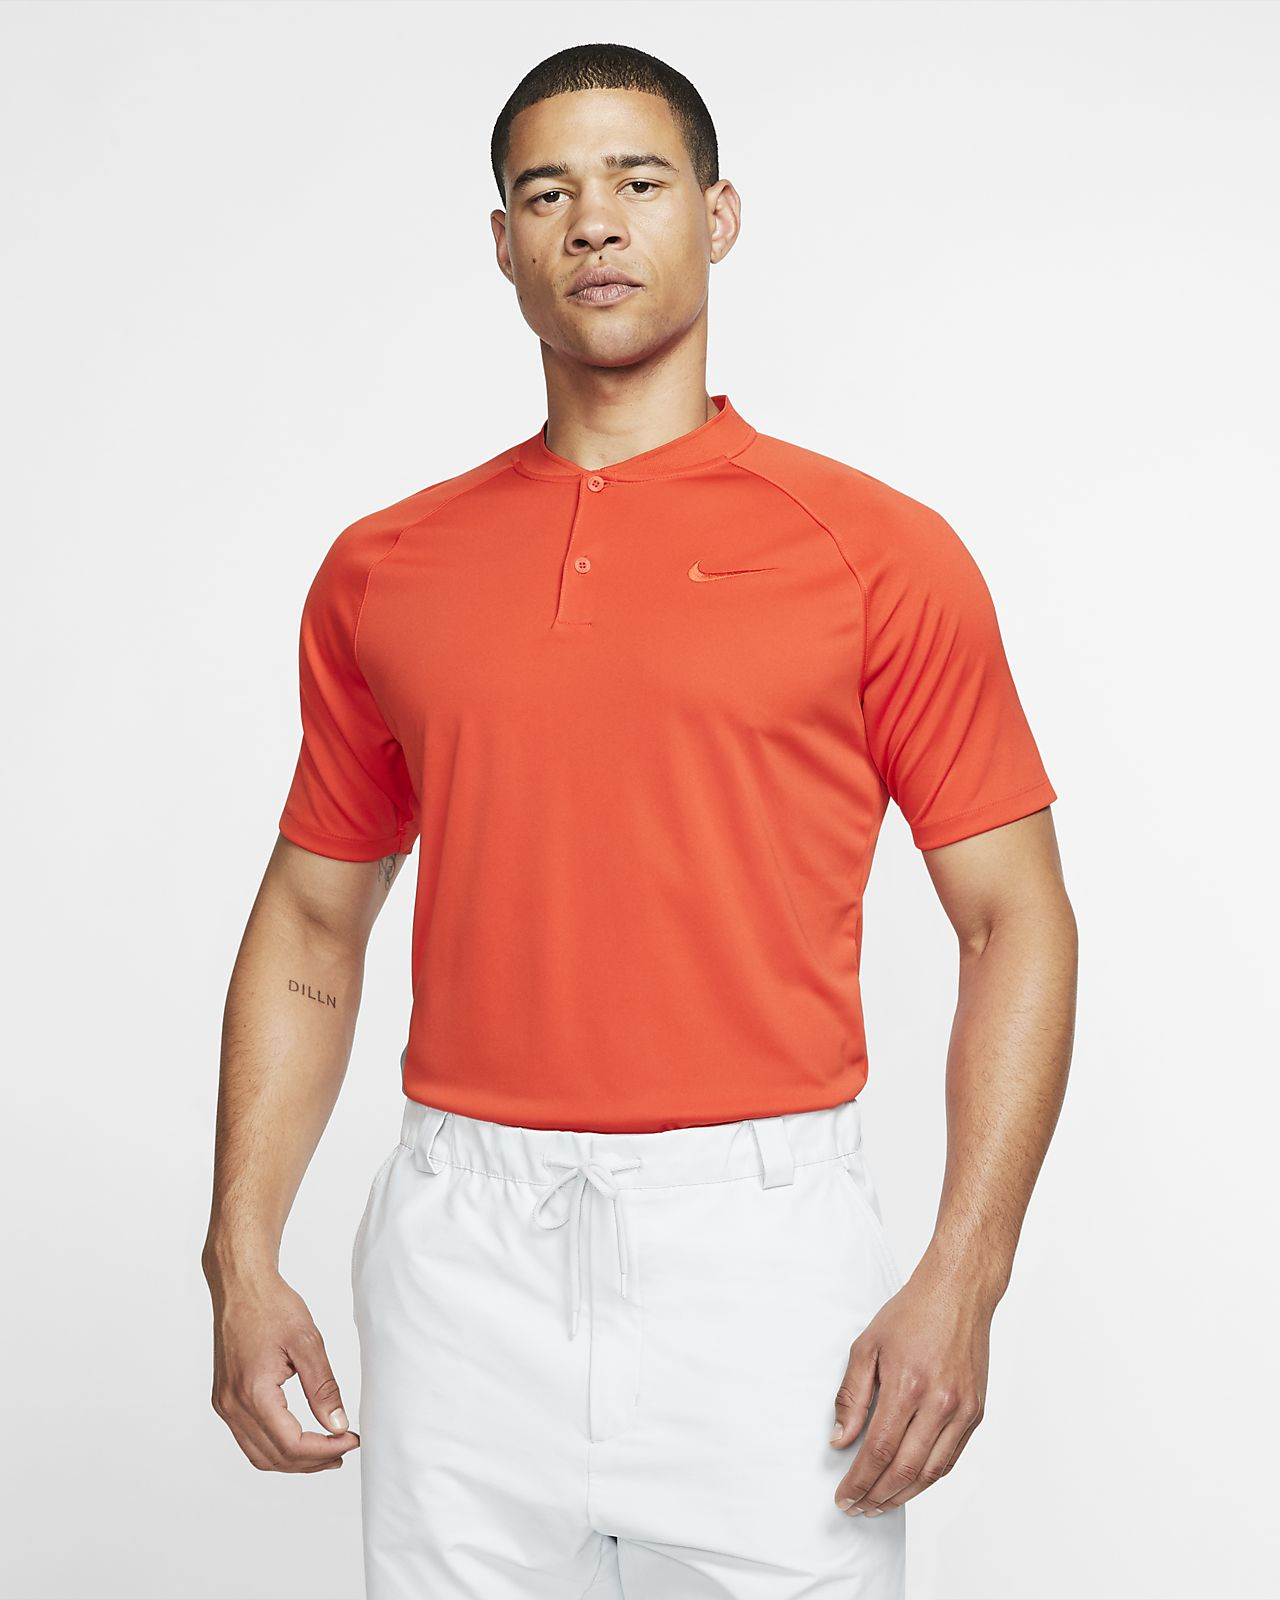 bd303a0a5 Nike Dri-FIT Momentum Men's Standard Fit Golf Polo. Nike.com